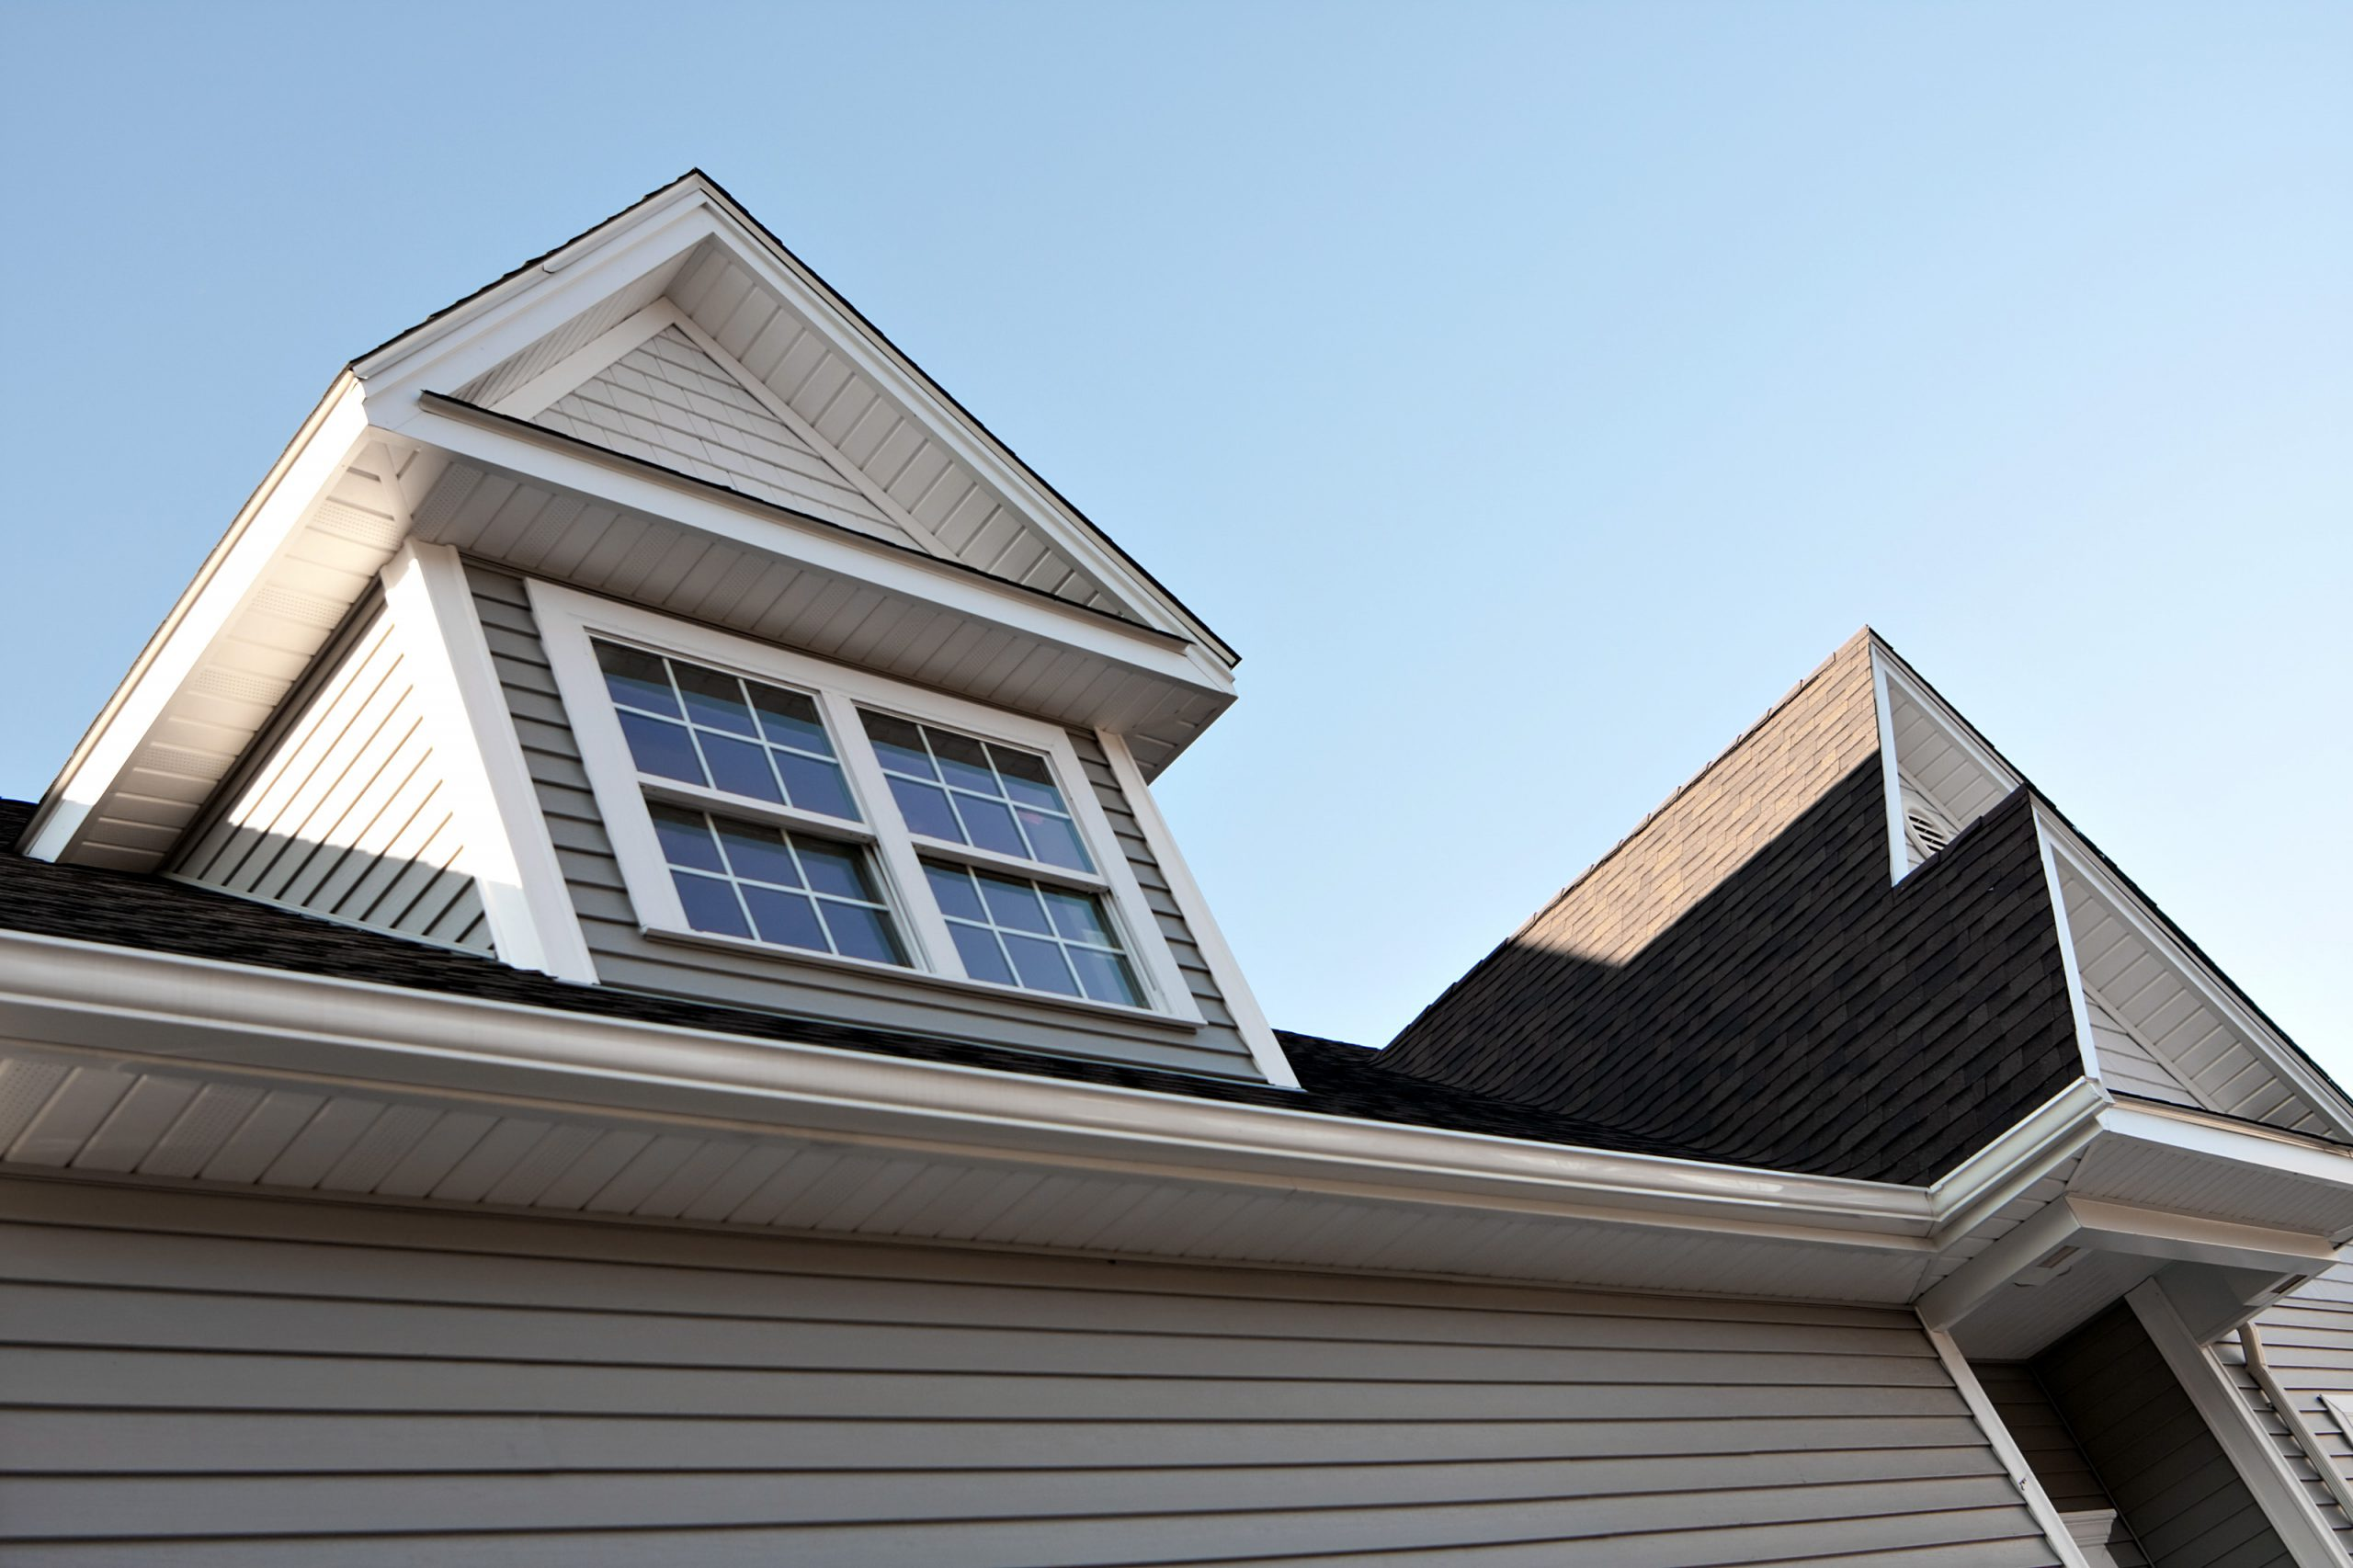 siding-installation-crystal-lake-siding-contractor-crystal-lake